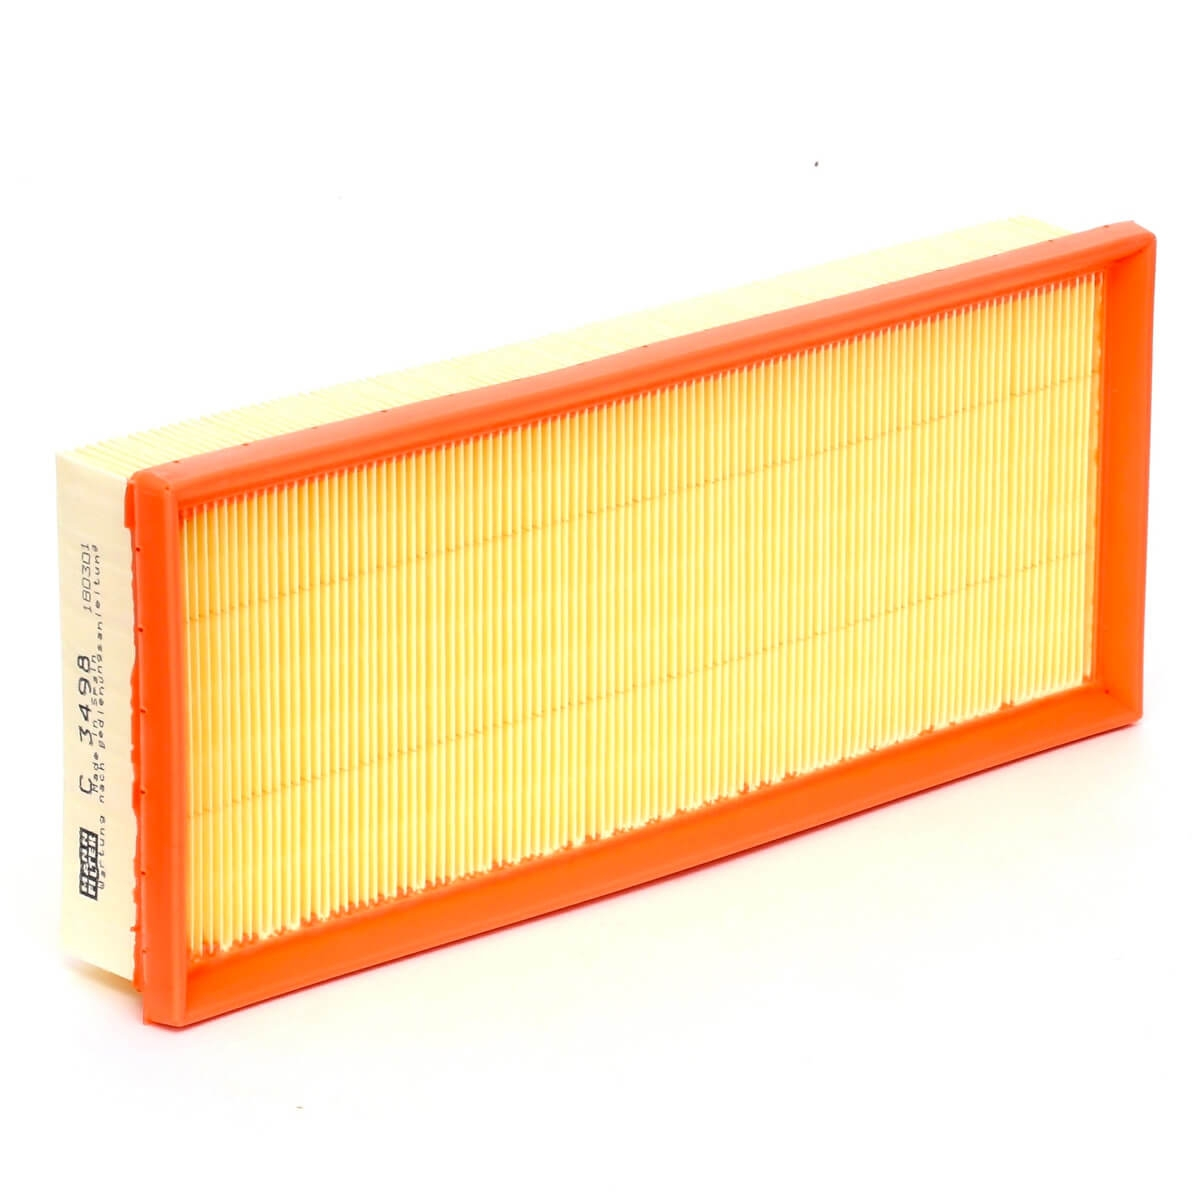 CITROEN C4 SPACETOURER Air Filter